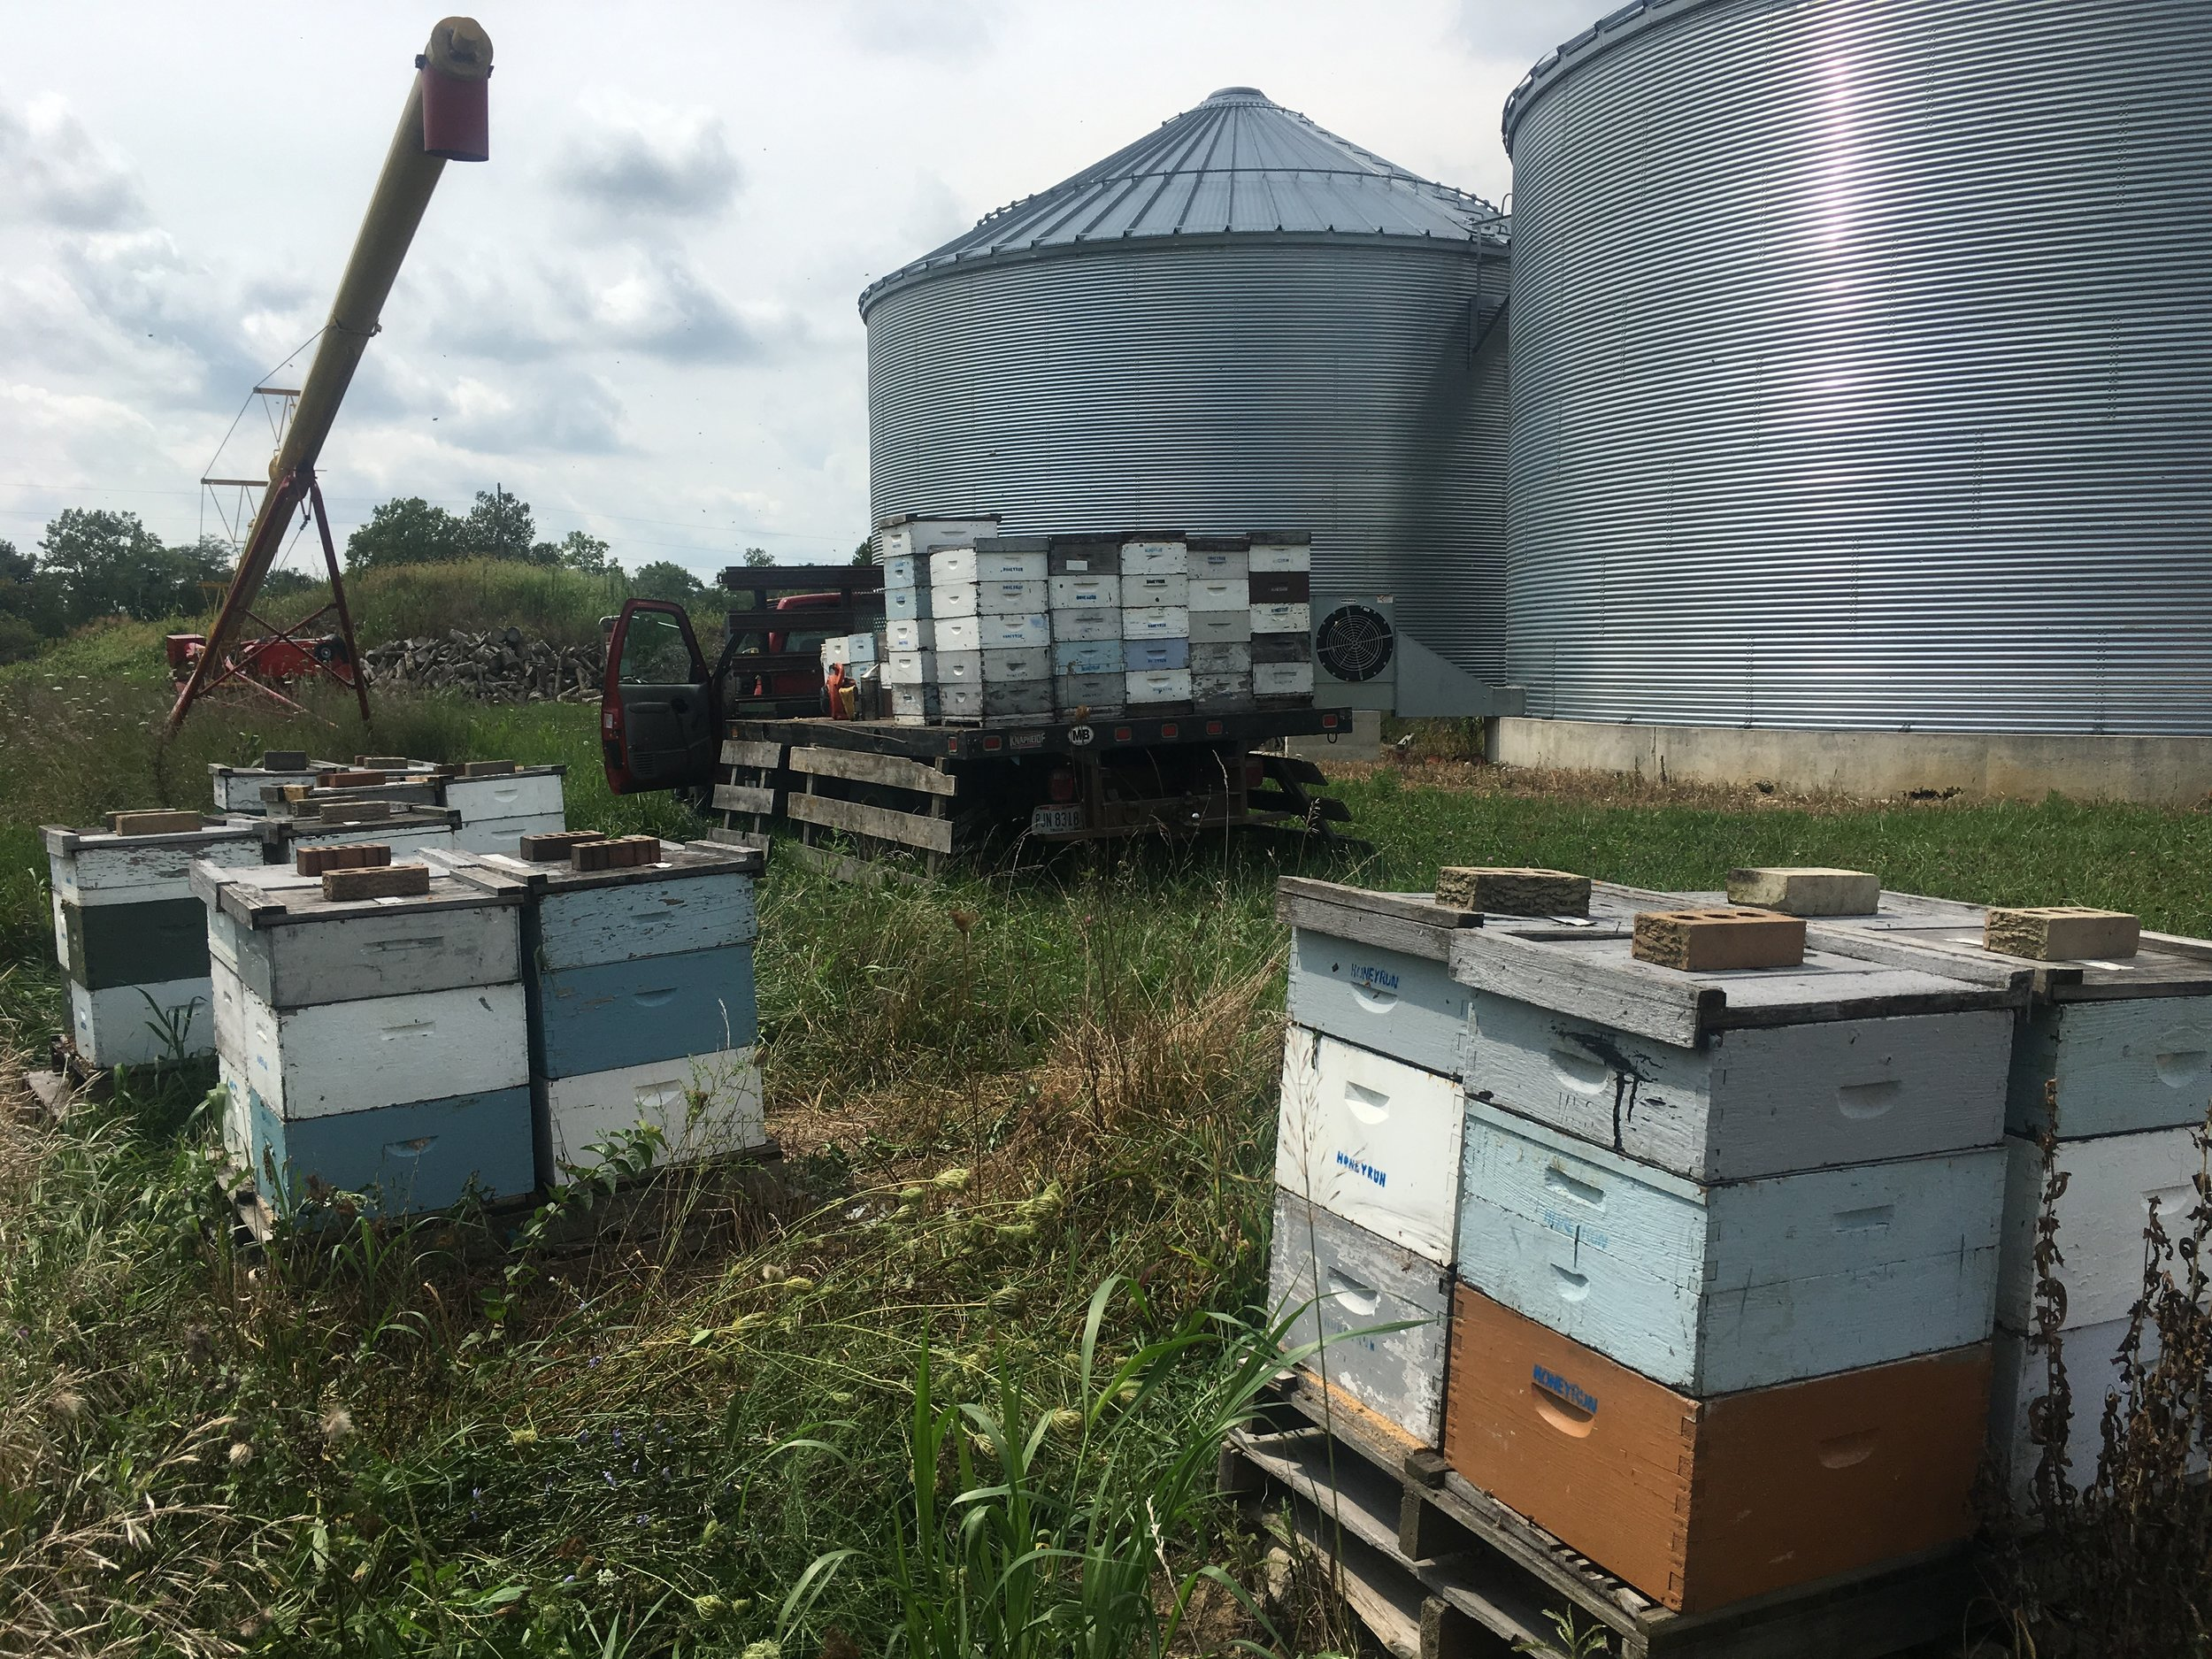 They'll be using those grain bins eventually... honey harvest beats grain harvest by two months.